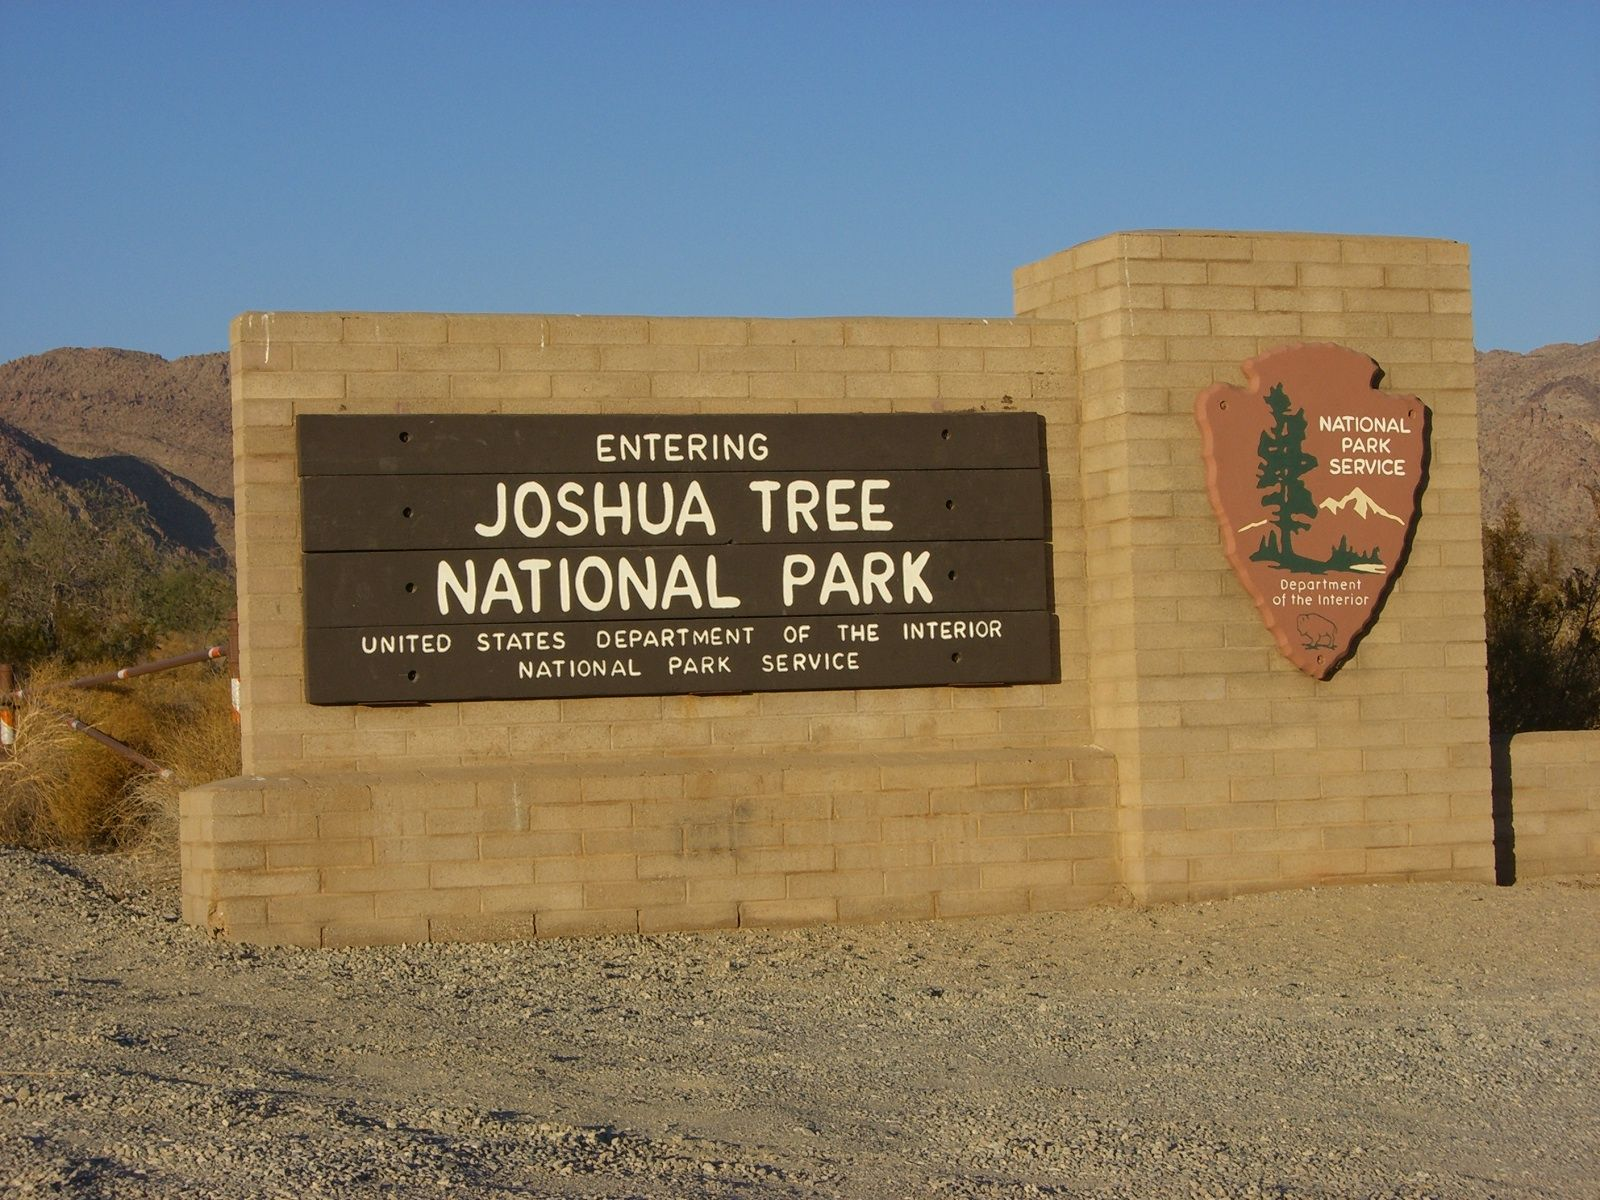 joshua tree national park christian dating site One doesn't have to look far to see a wonder of the plant world in joshua tree national park known scientifically as larrea tridentata, and in common parlance as the creosote bush,  this site all nps.